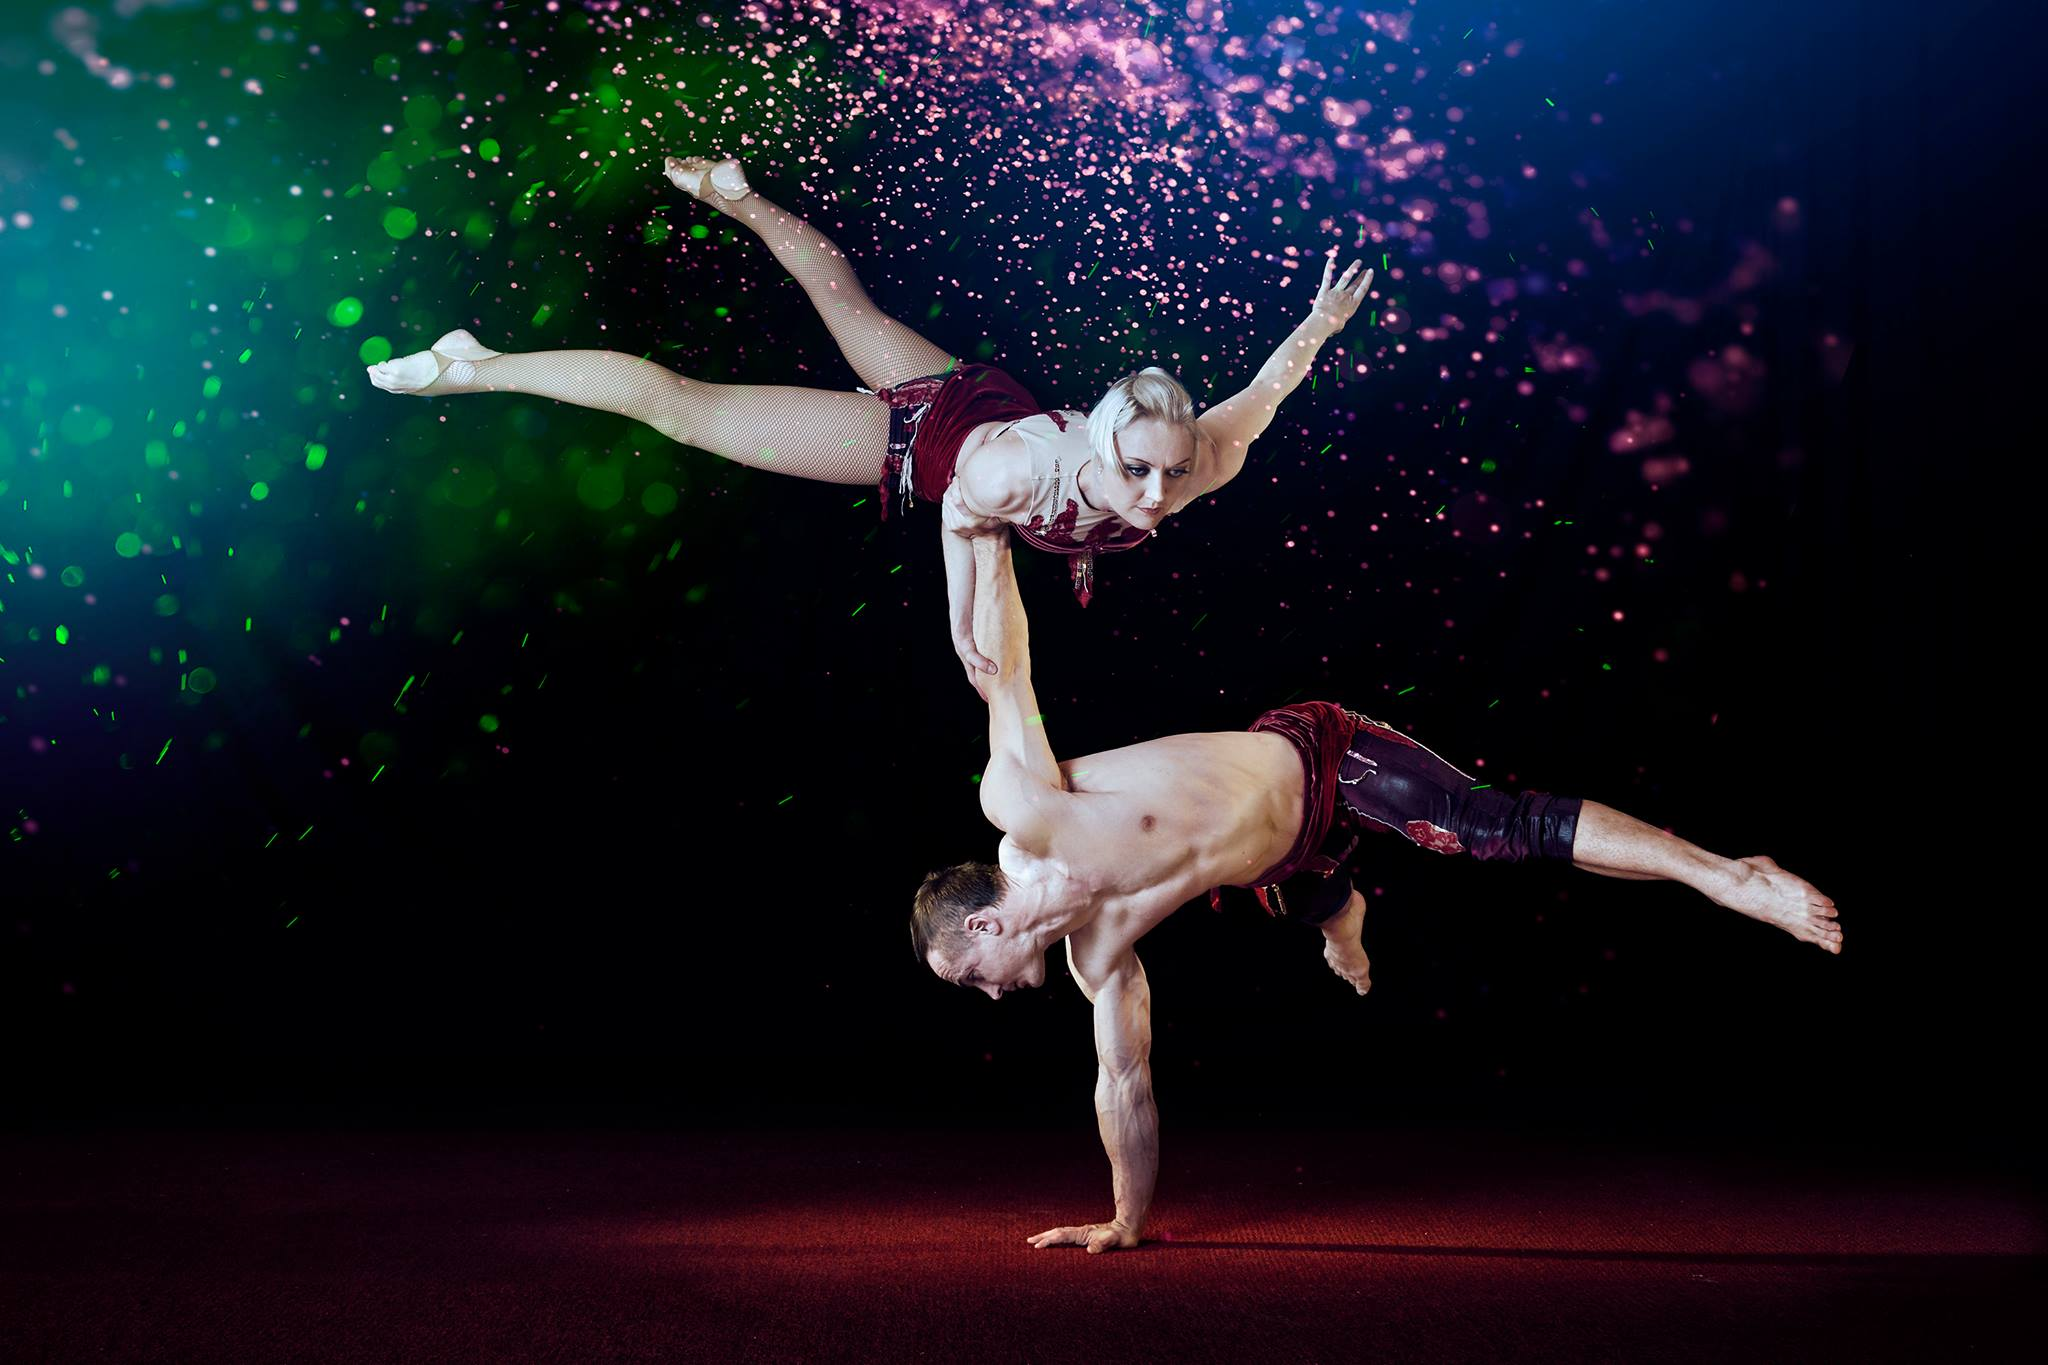 Two hand balancers perform handstands on each other in front of a black background with glitter in the air